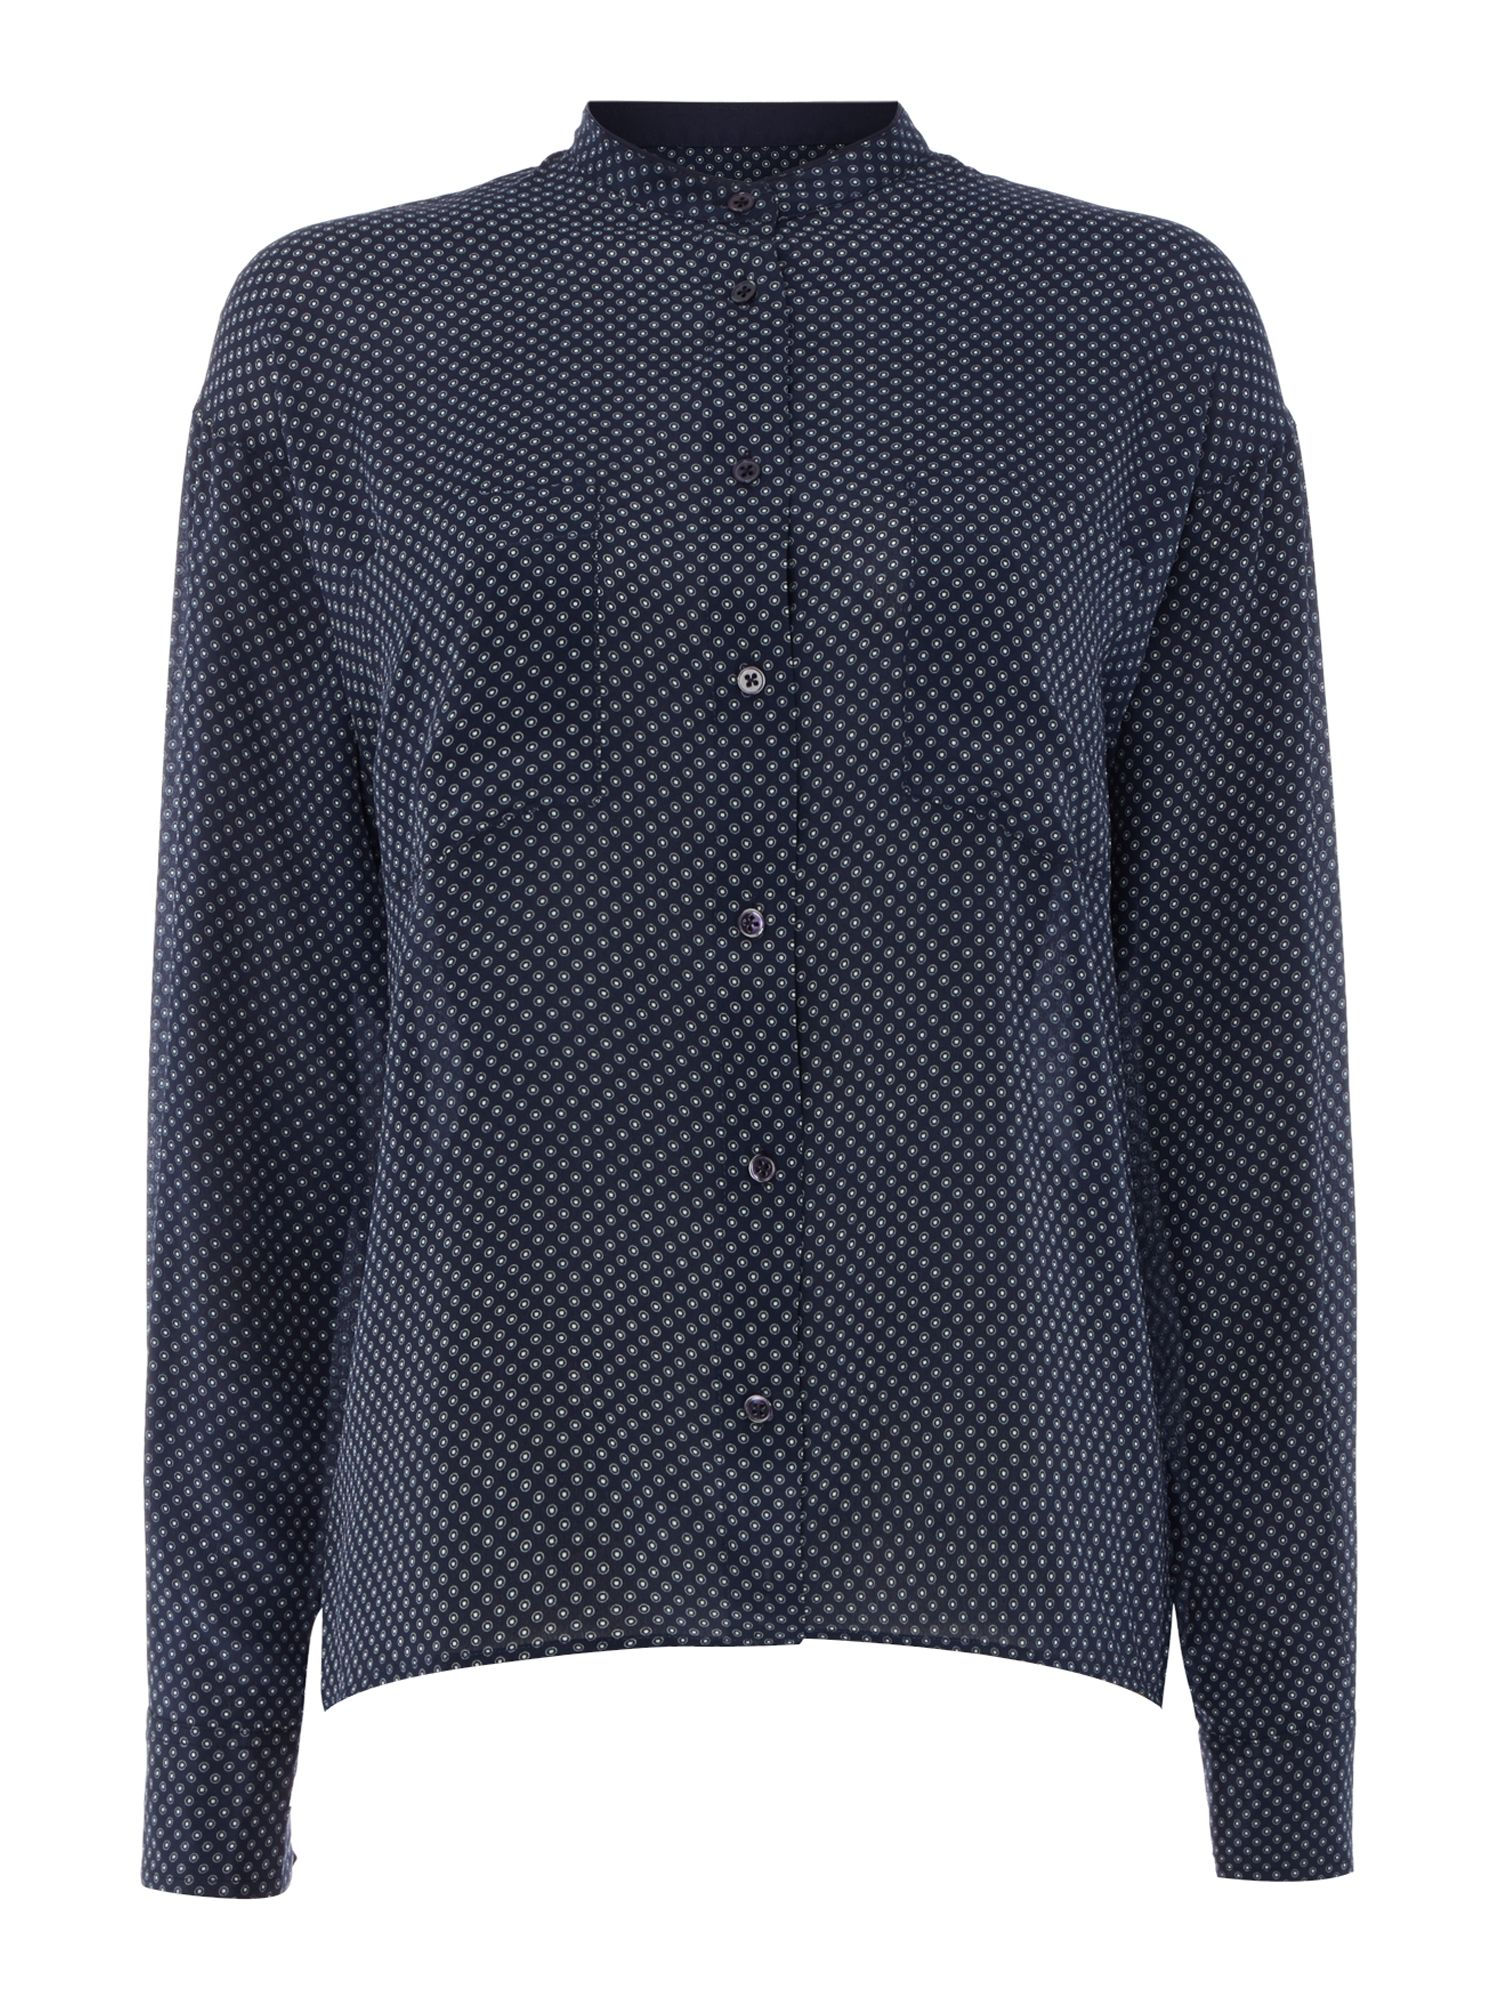 Gant Silk dot print blouse, Blue